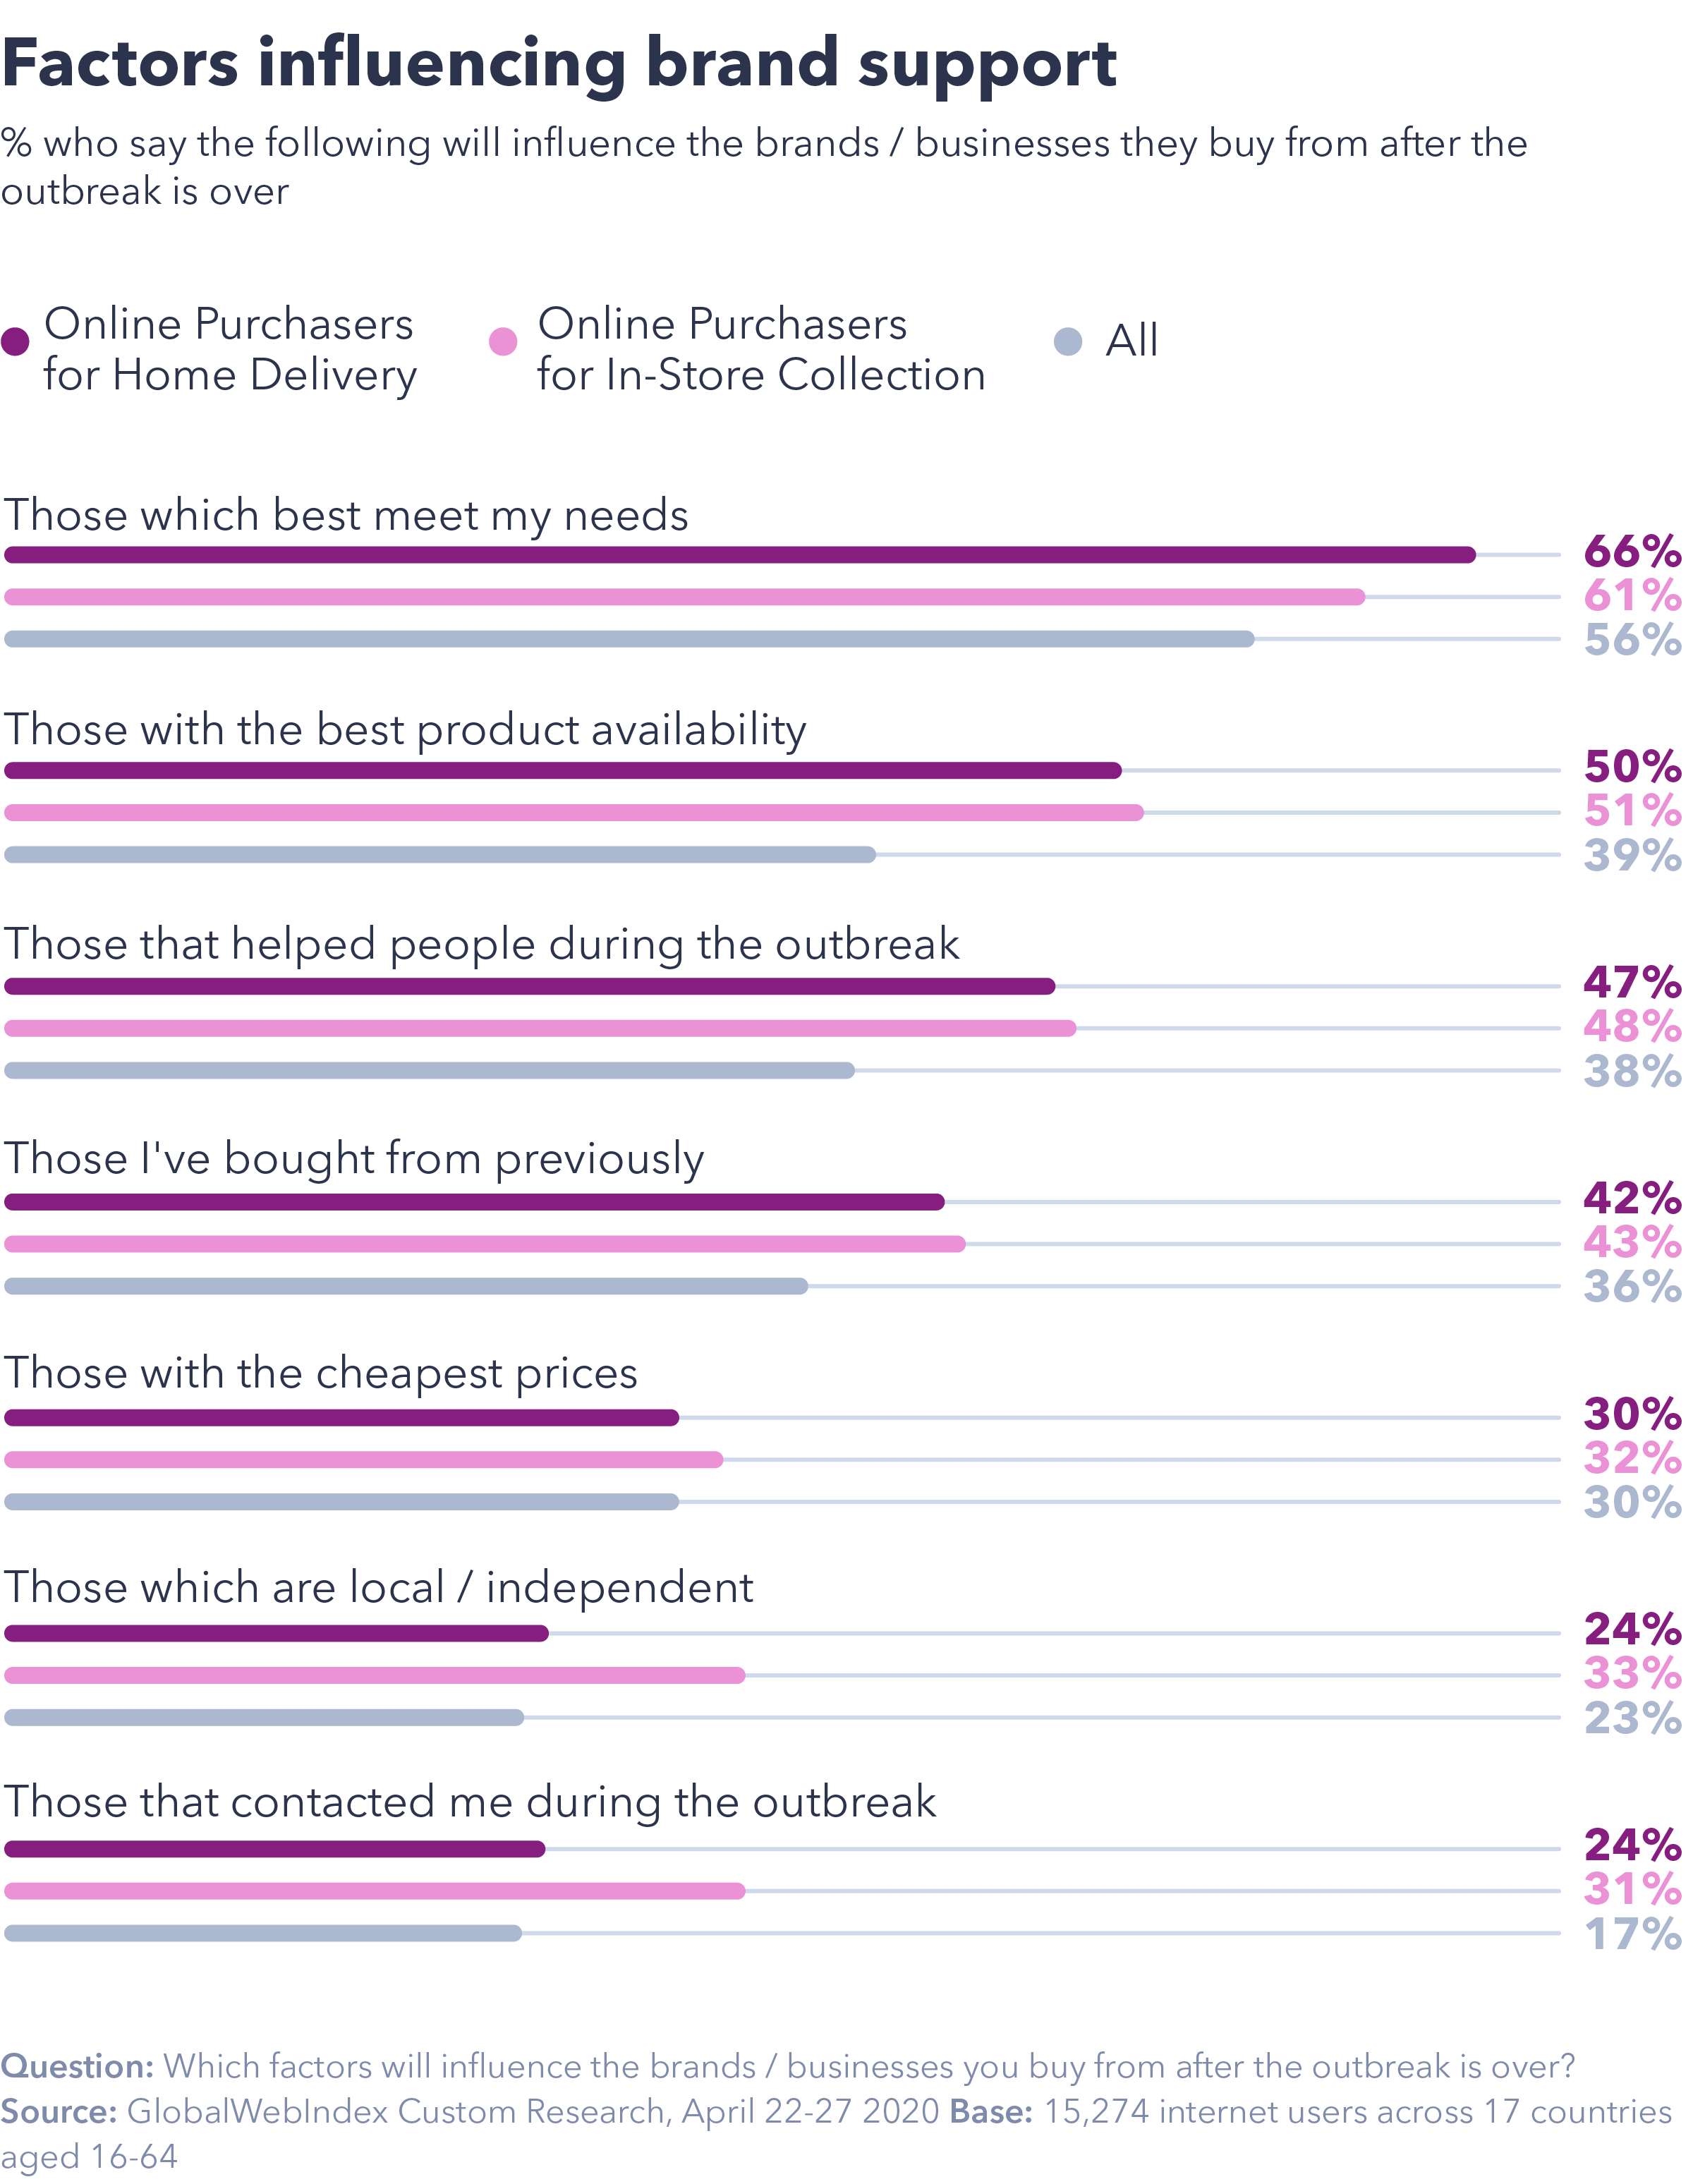 Chart showing factors influencing brand support